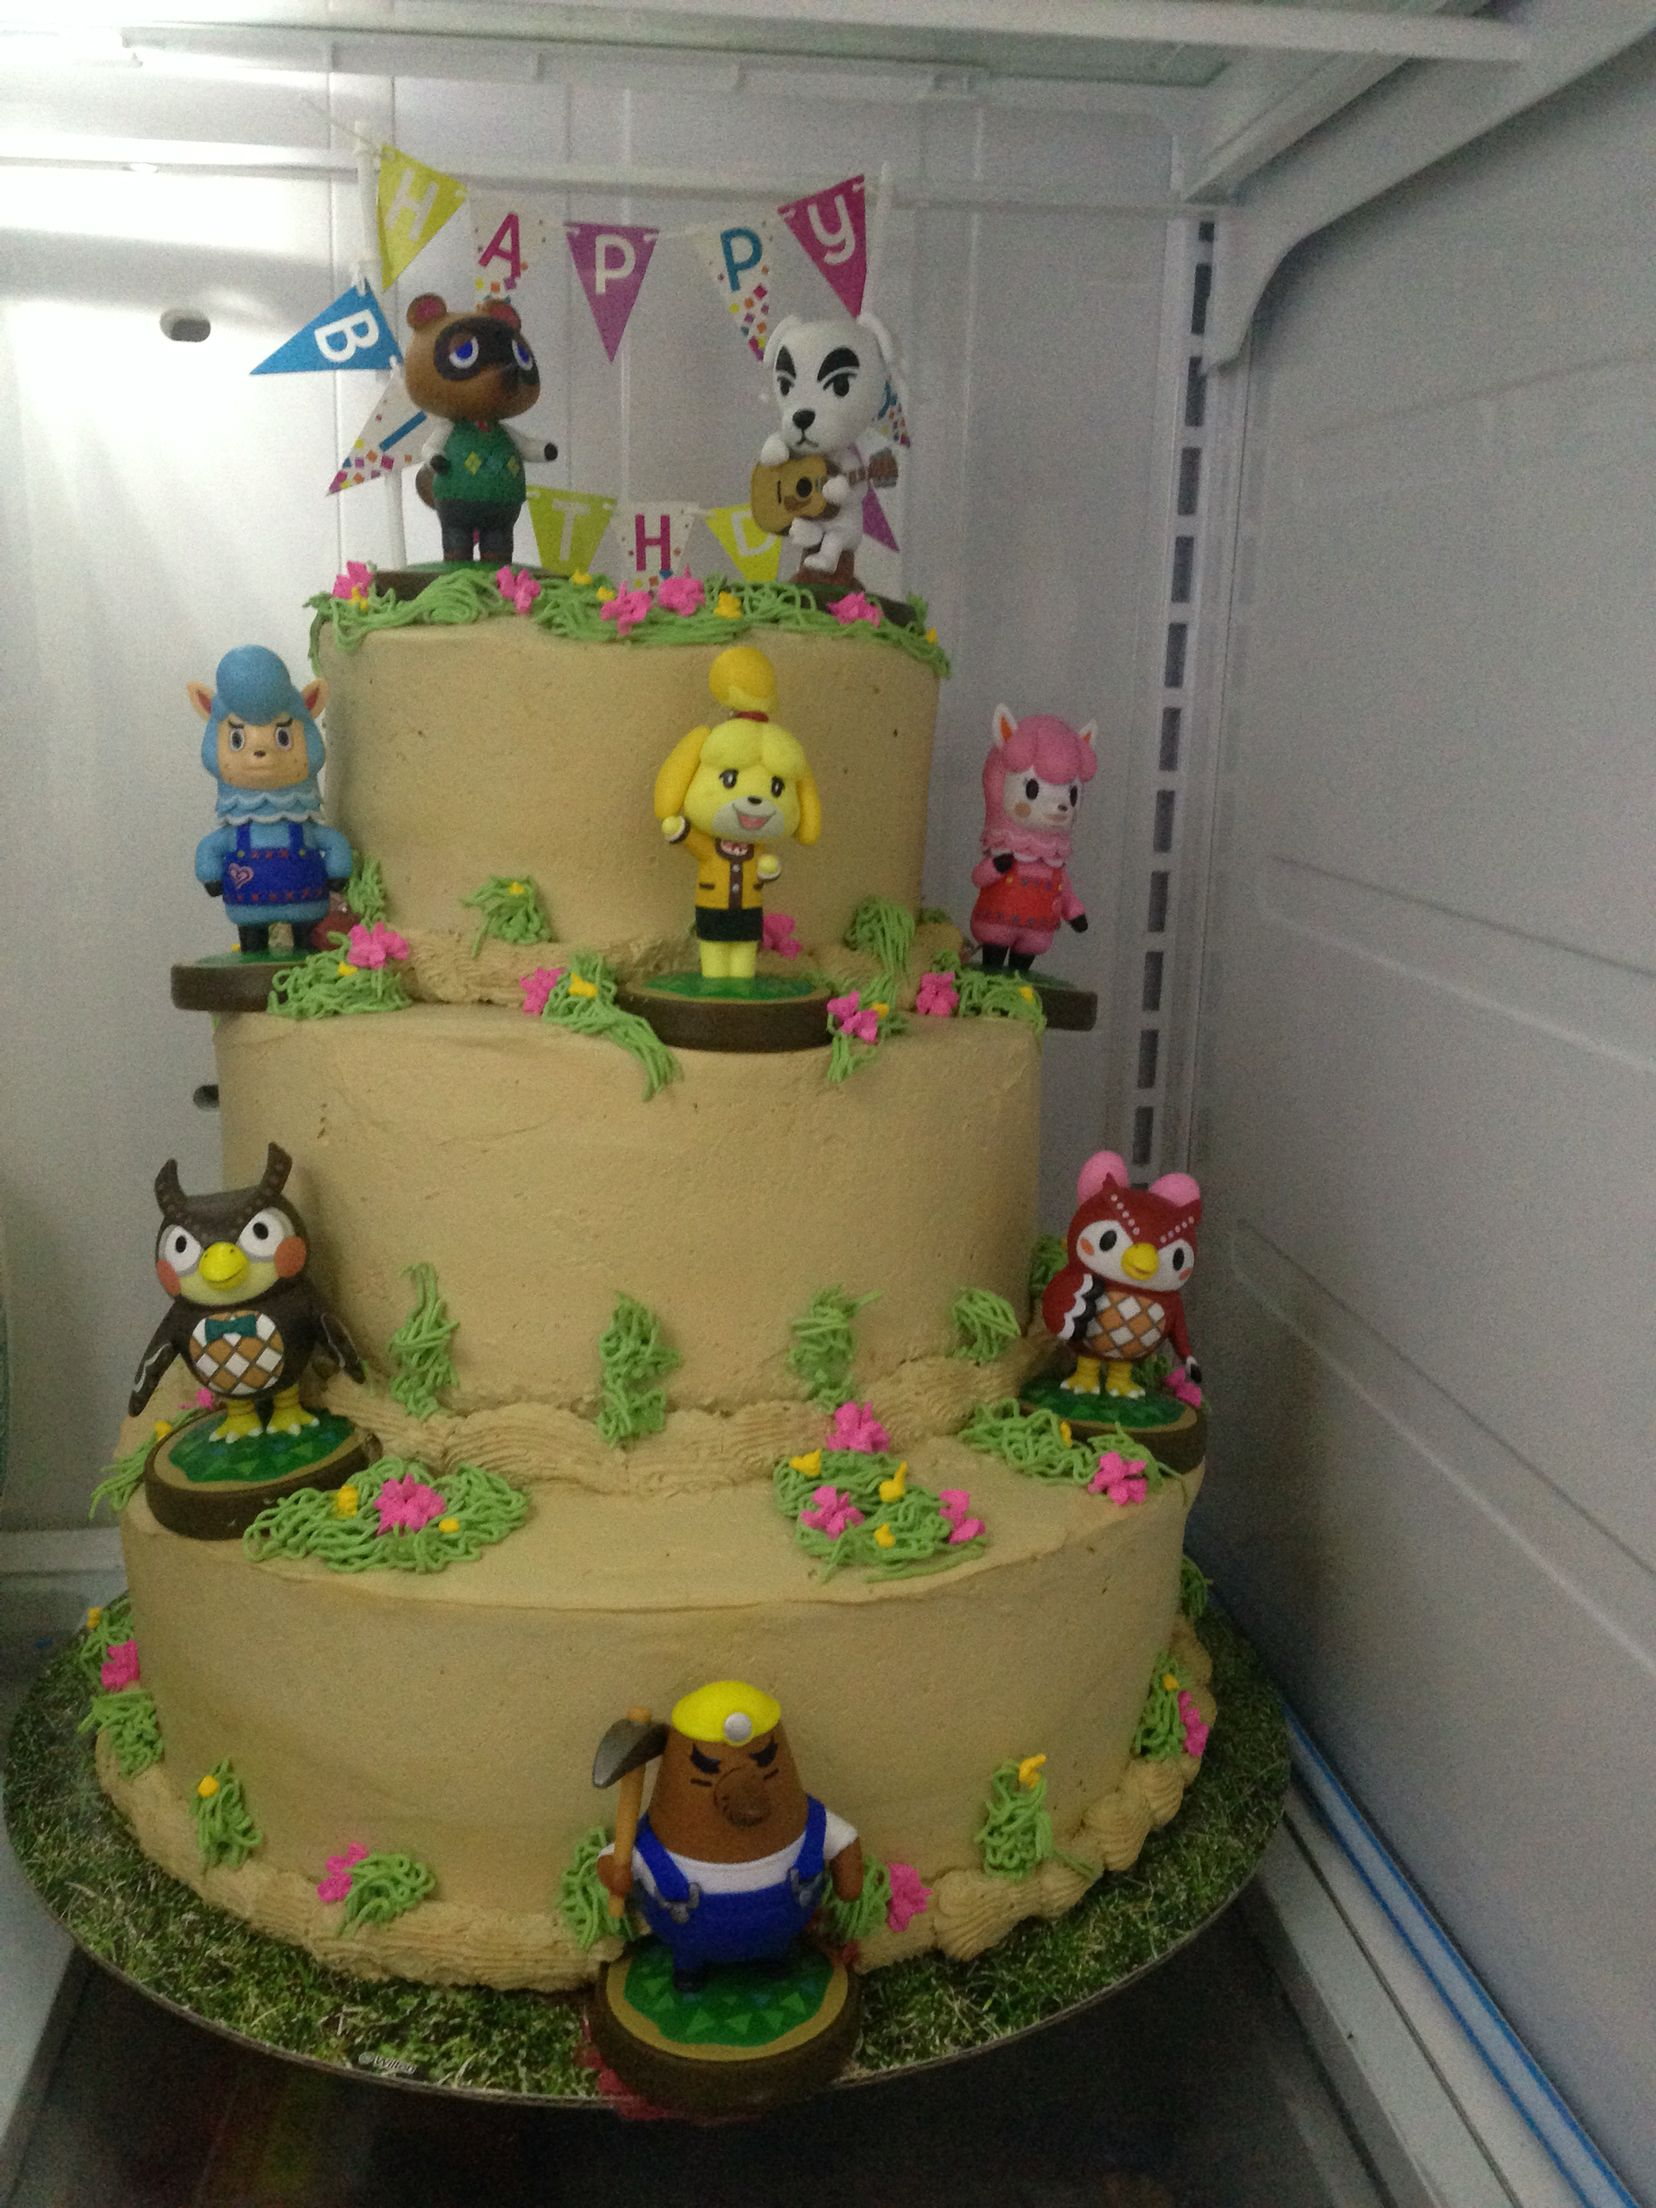 Superb Animal Crossing Birthday Cake Made From Amiibos With Images Funny Birthday Cards Online Necthendildamsfinfo